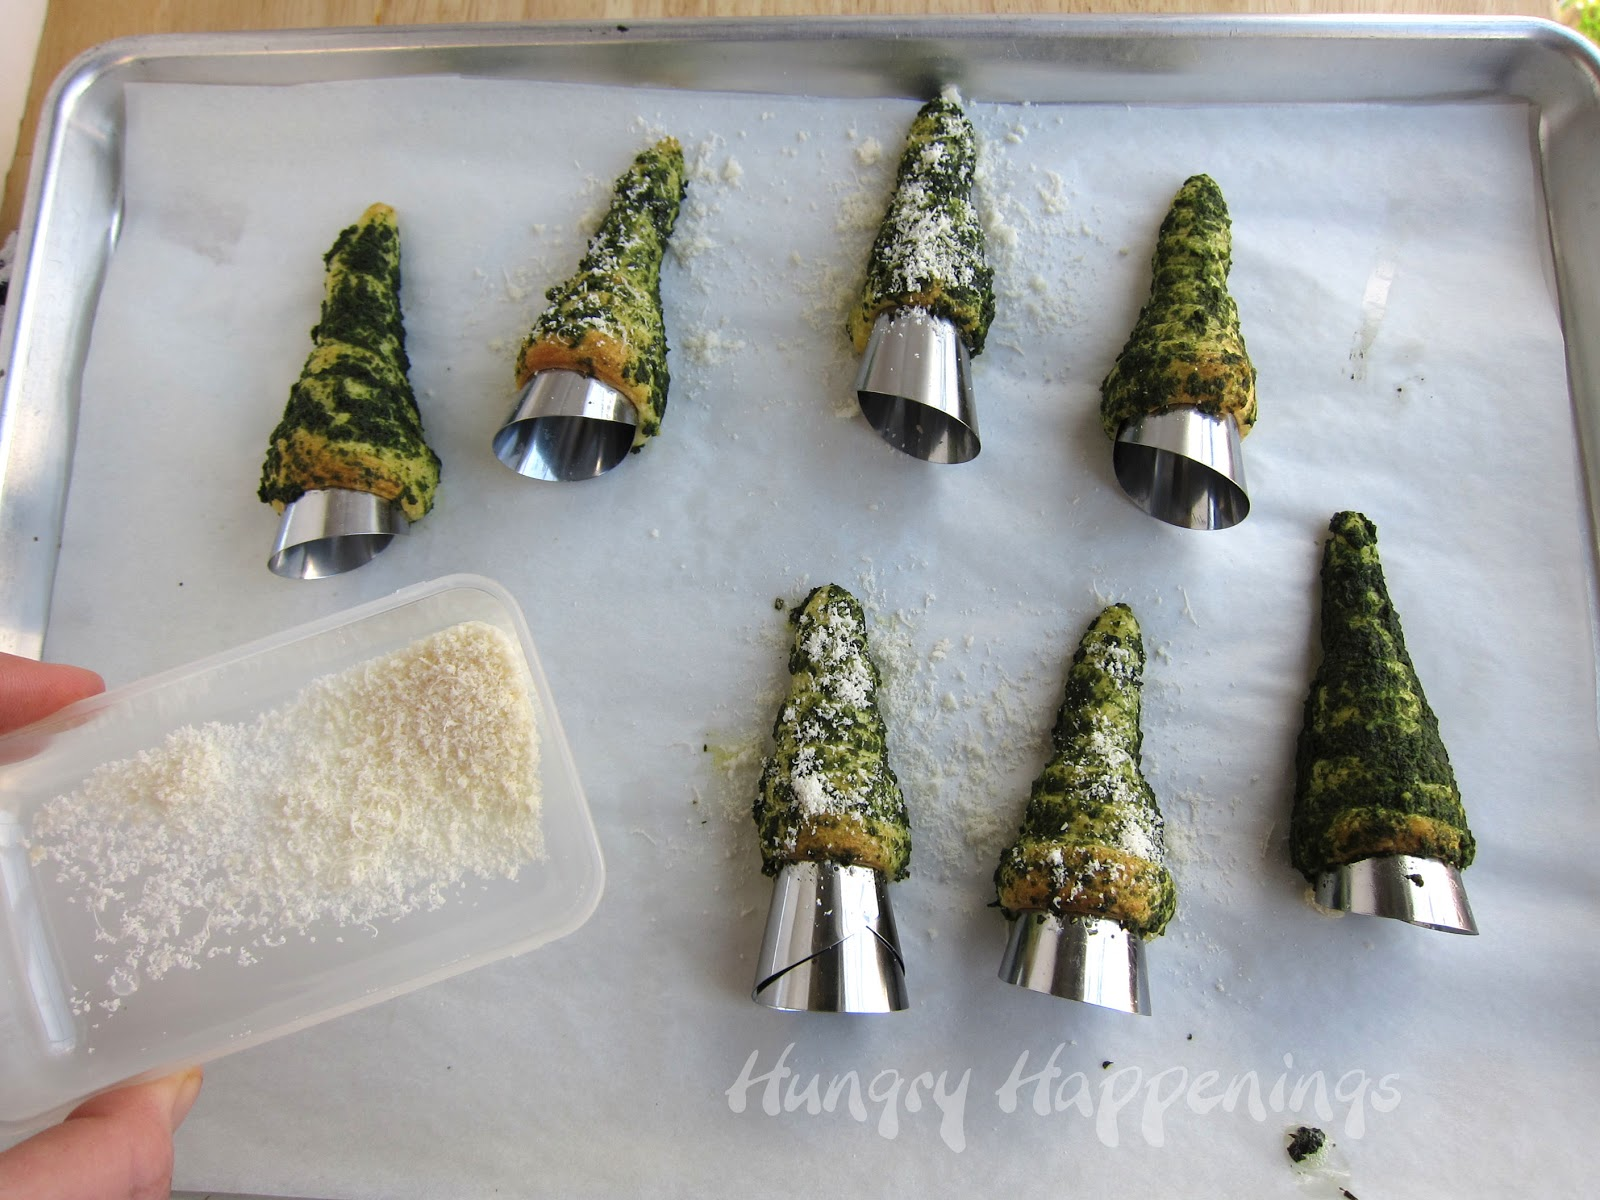 Christmas Tree Appetizer Recipes Part - 32: Sprinkle Parmesan Cheese Over Top Of The Green Pesto Crescent Roll Christmas  Trees